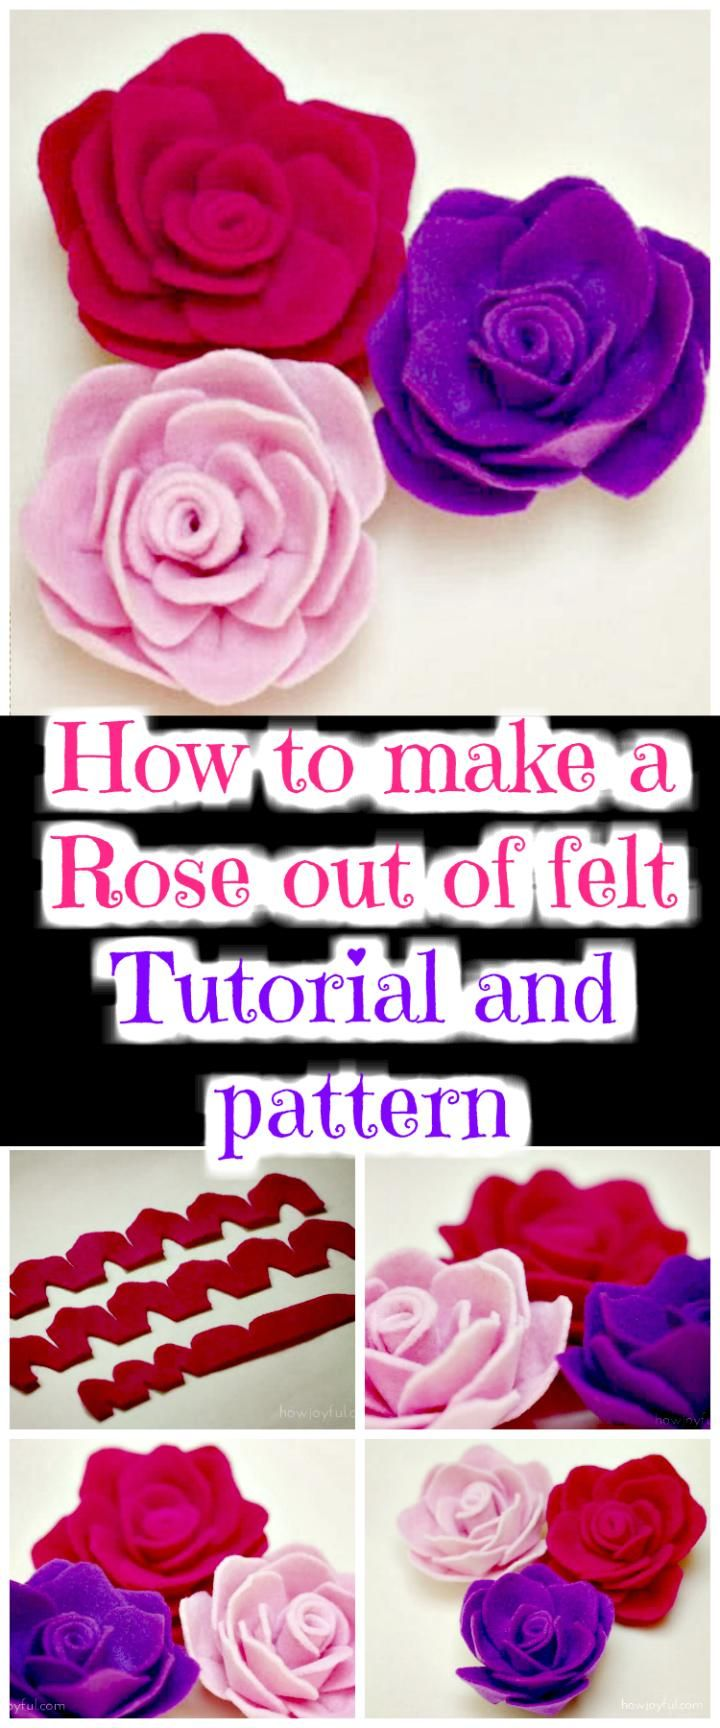 50 Easy Fabric Flowers Tutorial  Make Your Own Fabric Flowers